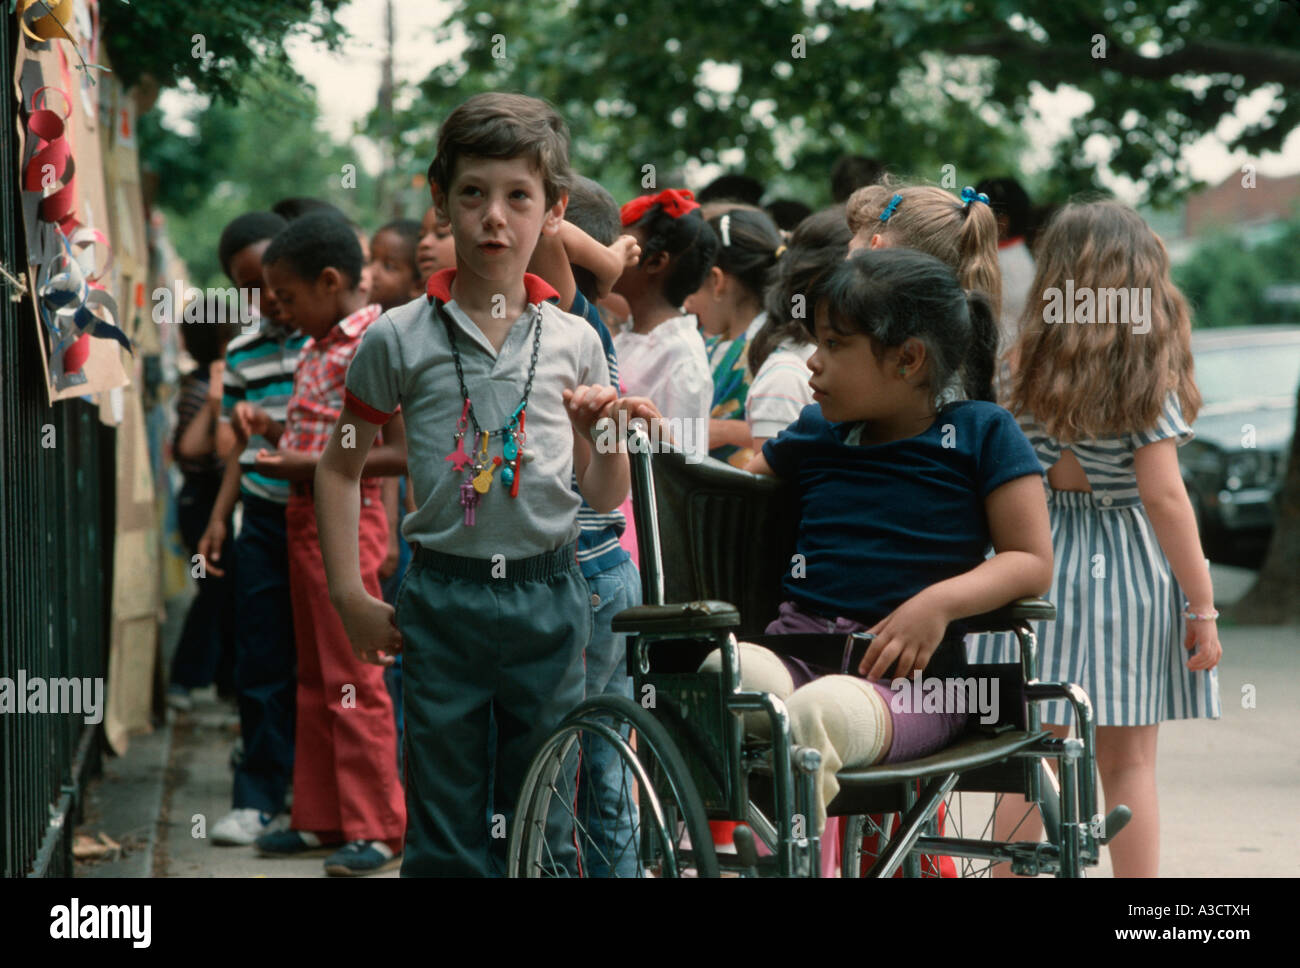 Elementary school children at a student art show in Brooklyn New York - Stock Image